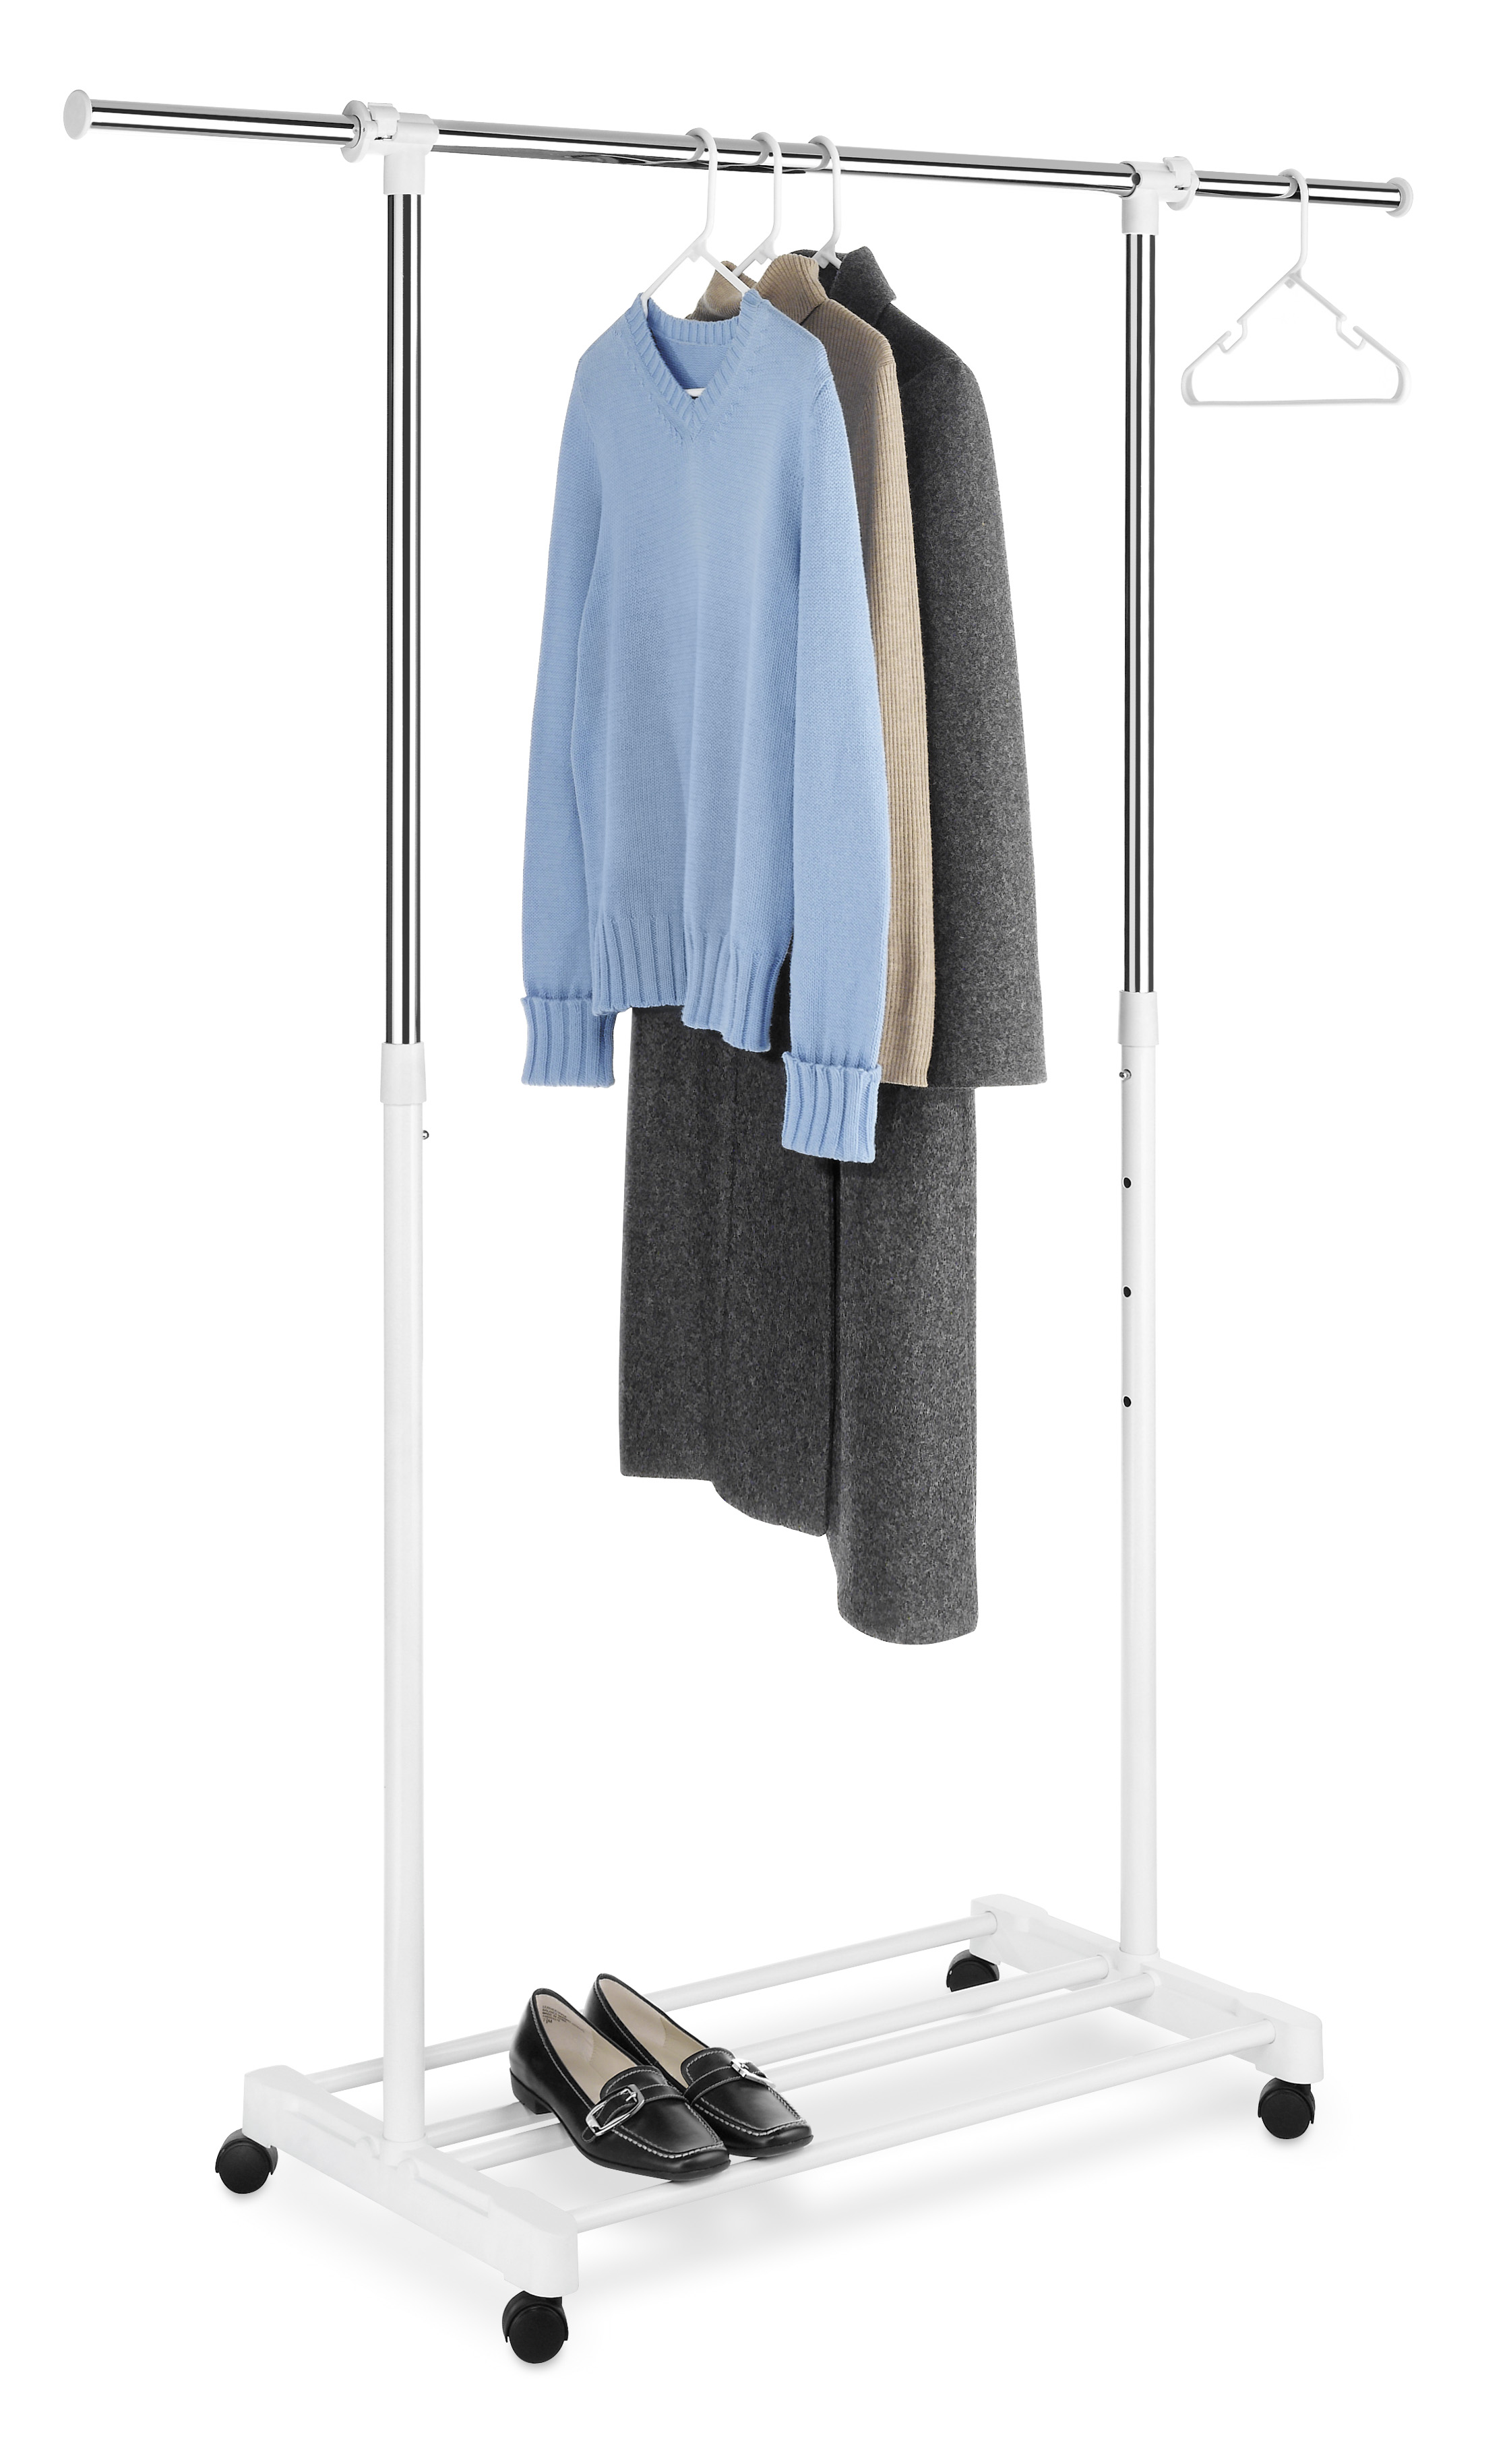 Whitmor Deluxe Adjustable Garment Rack,   Walmart.com